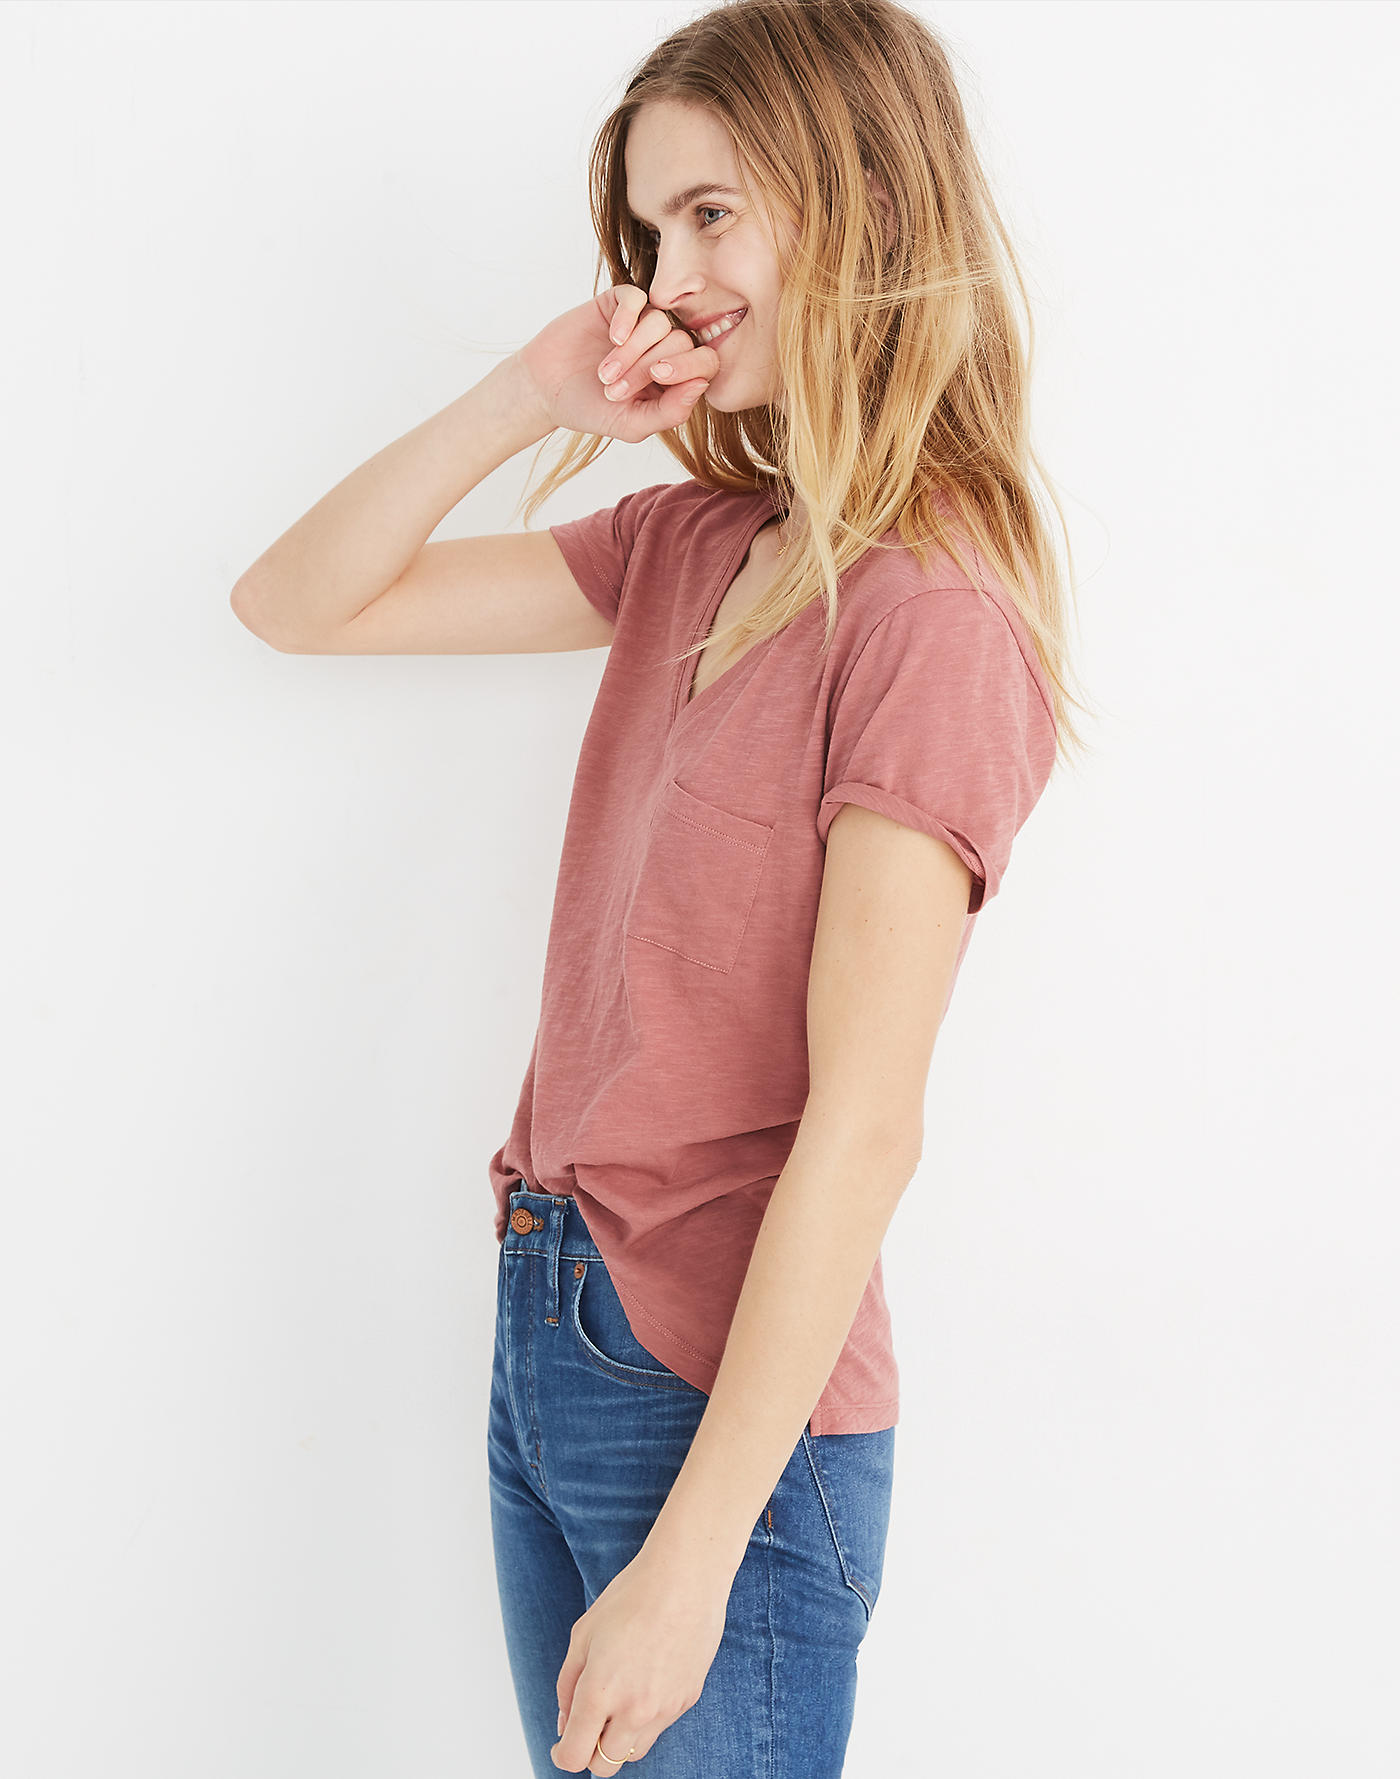 Whisper Cotton V-Neck Pocket Tee - Use code SUNNY20 for 20% offSHOP IT NOW